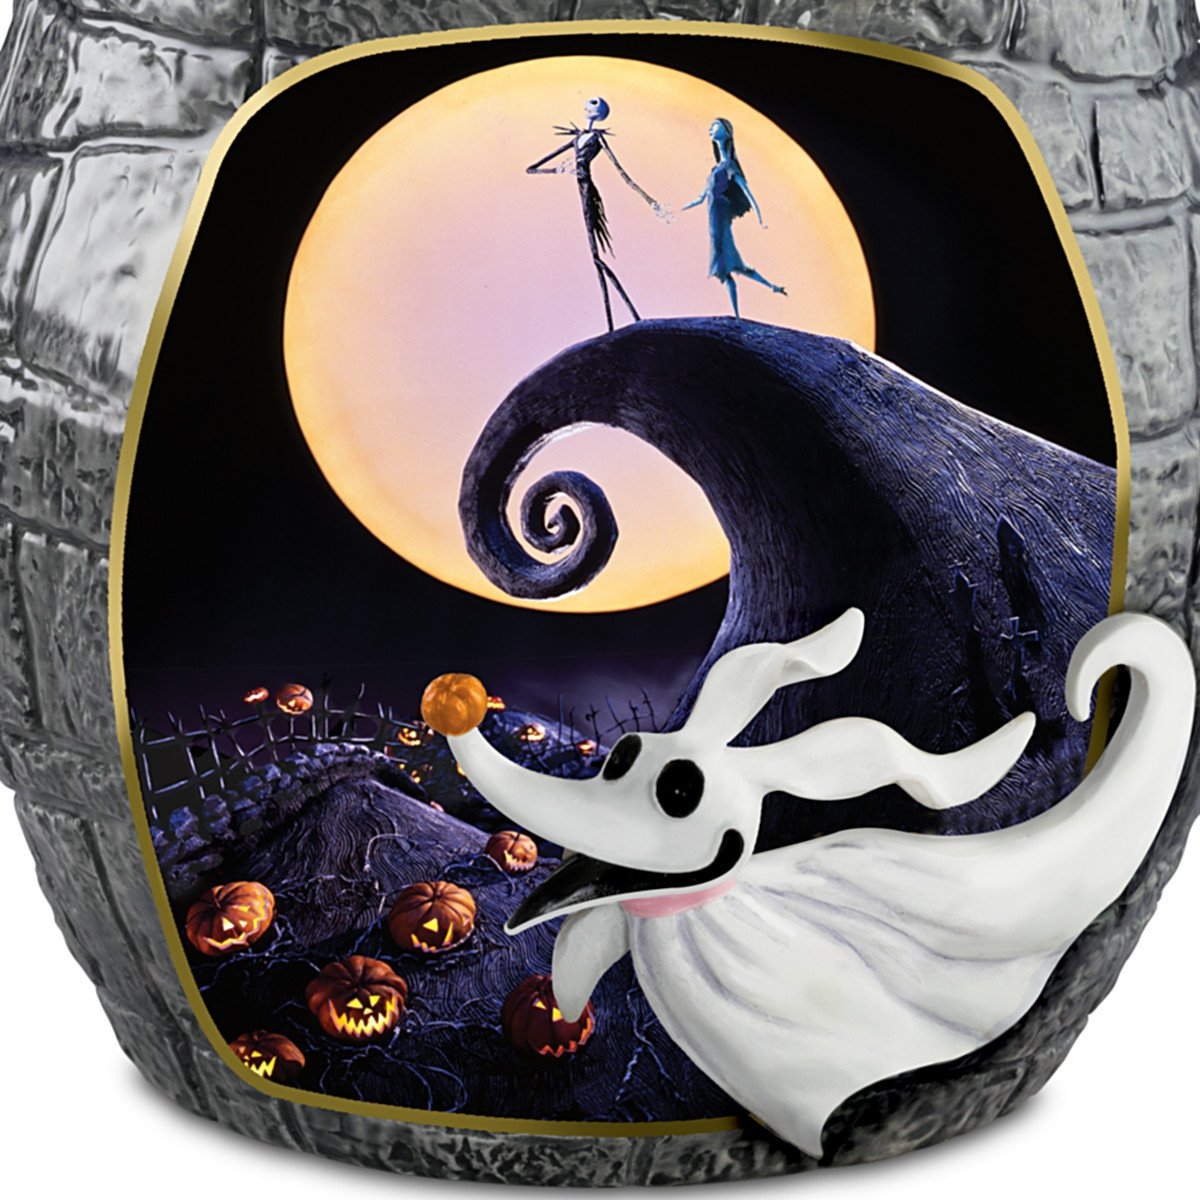 The Nightmare Before Christmas Cookie Jar With Jack Skellington ...